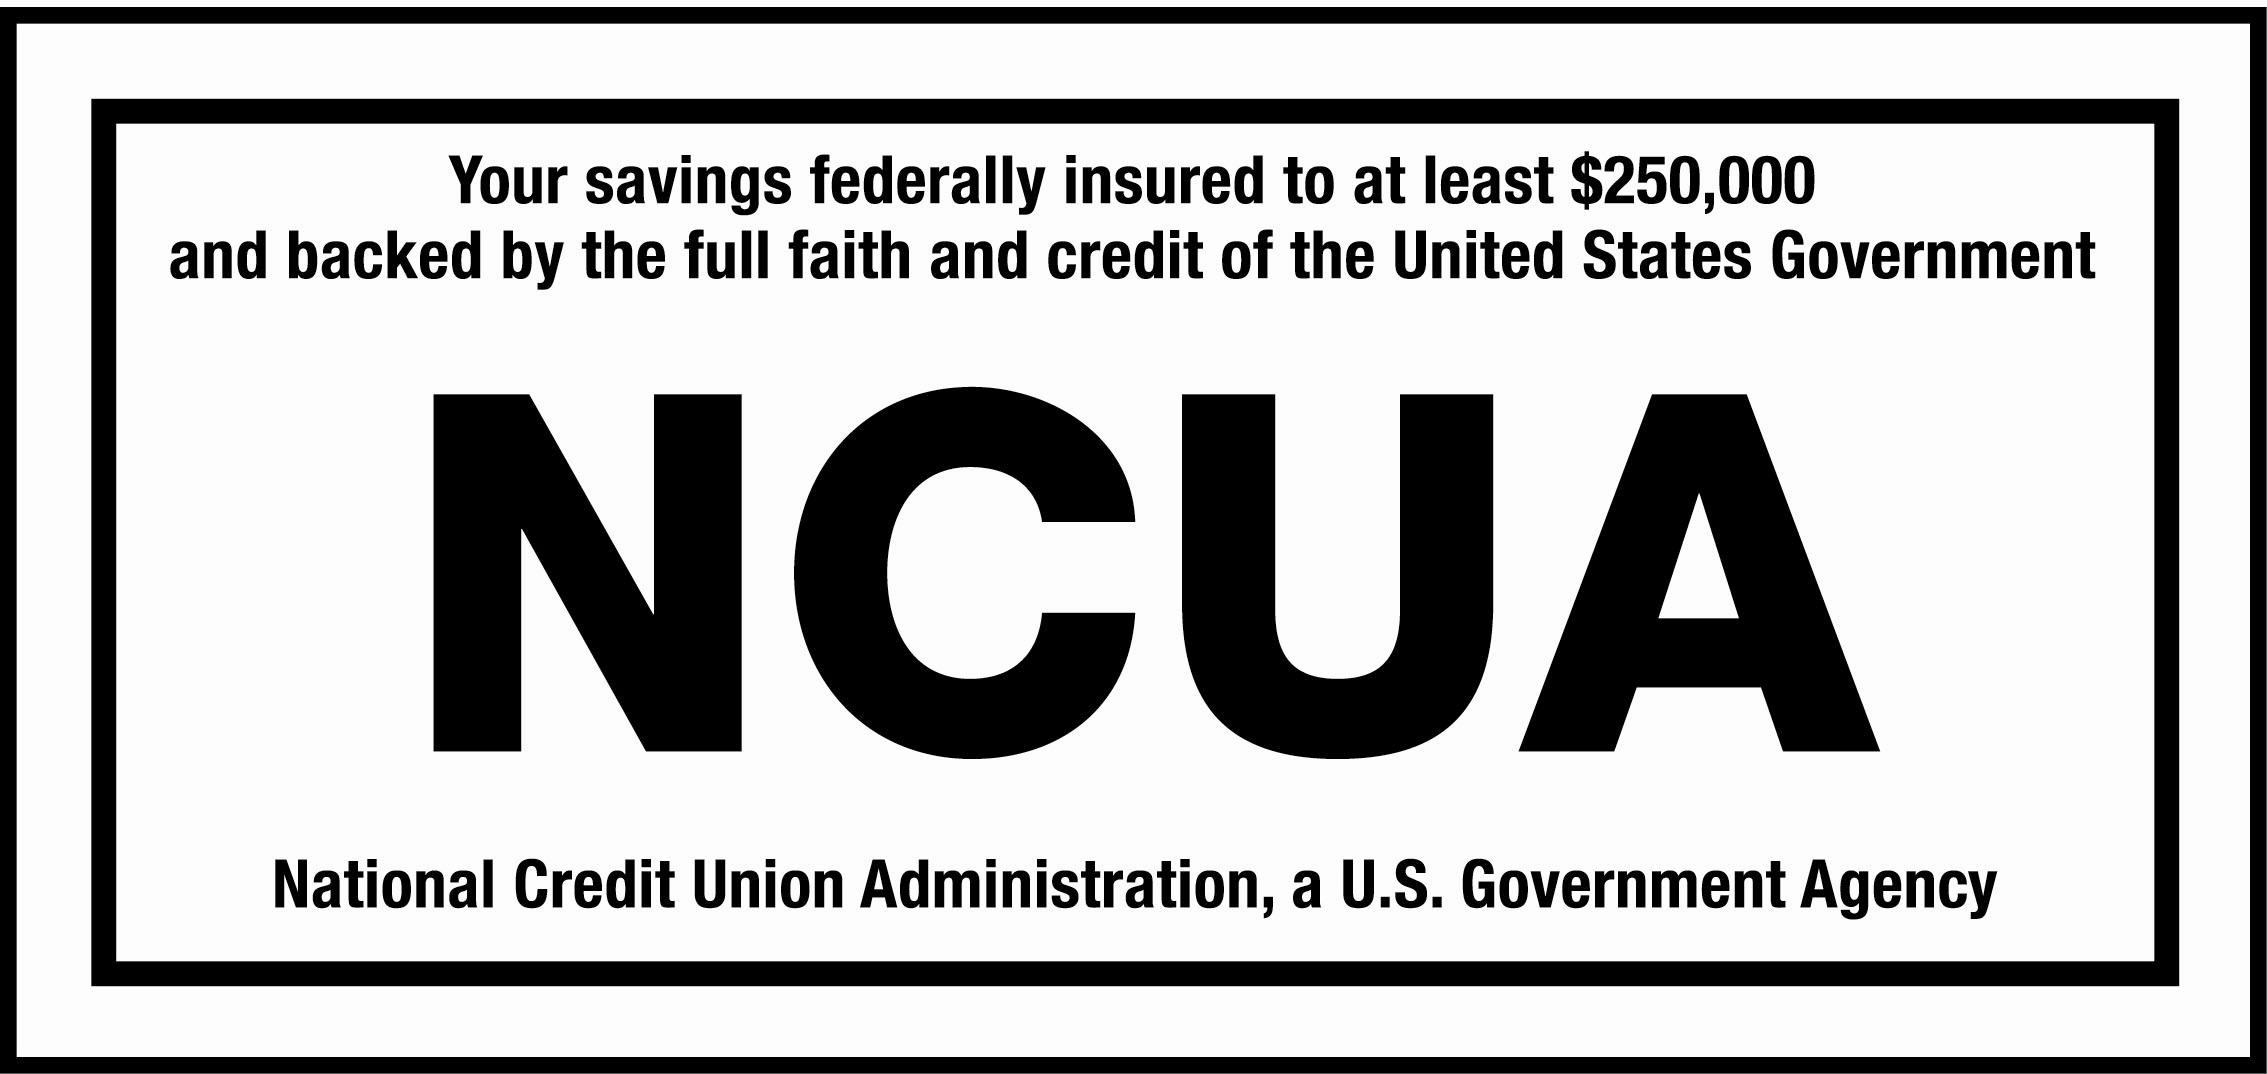 NCUA logo and statement